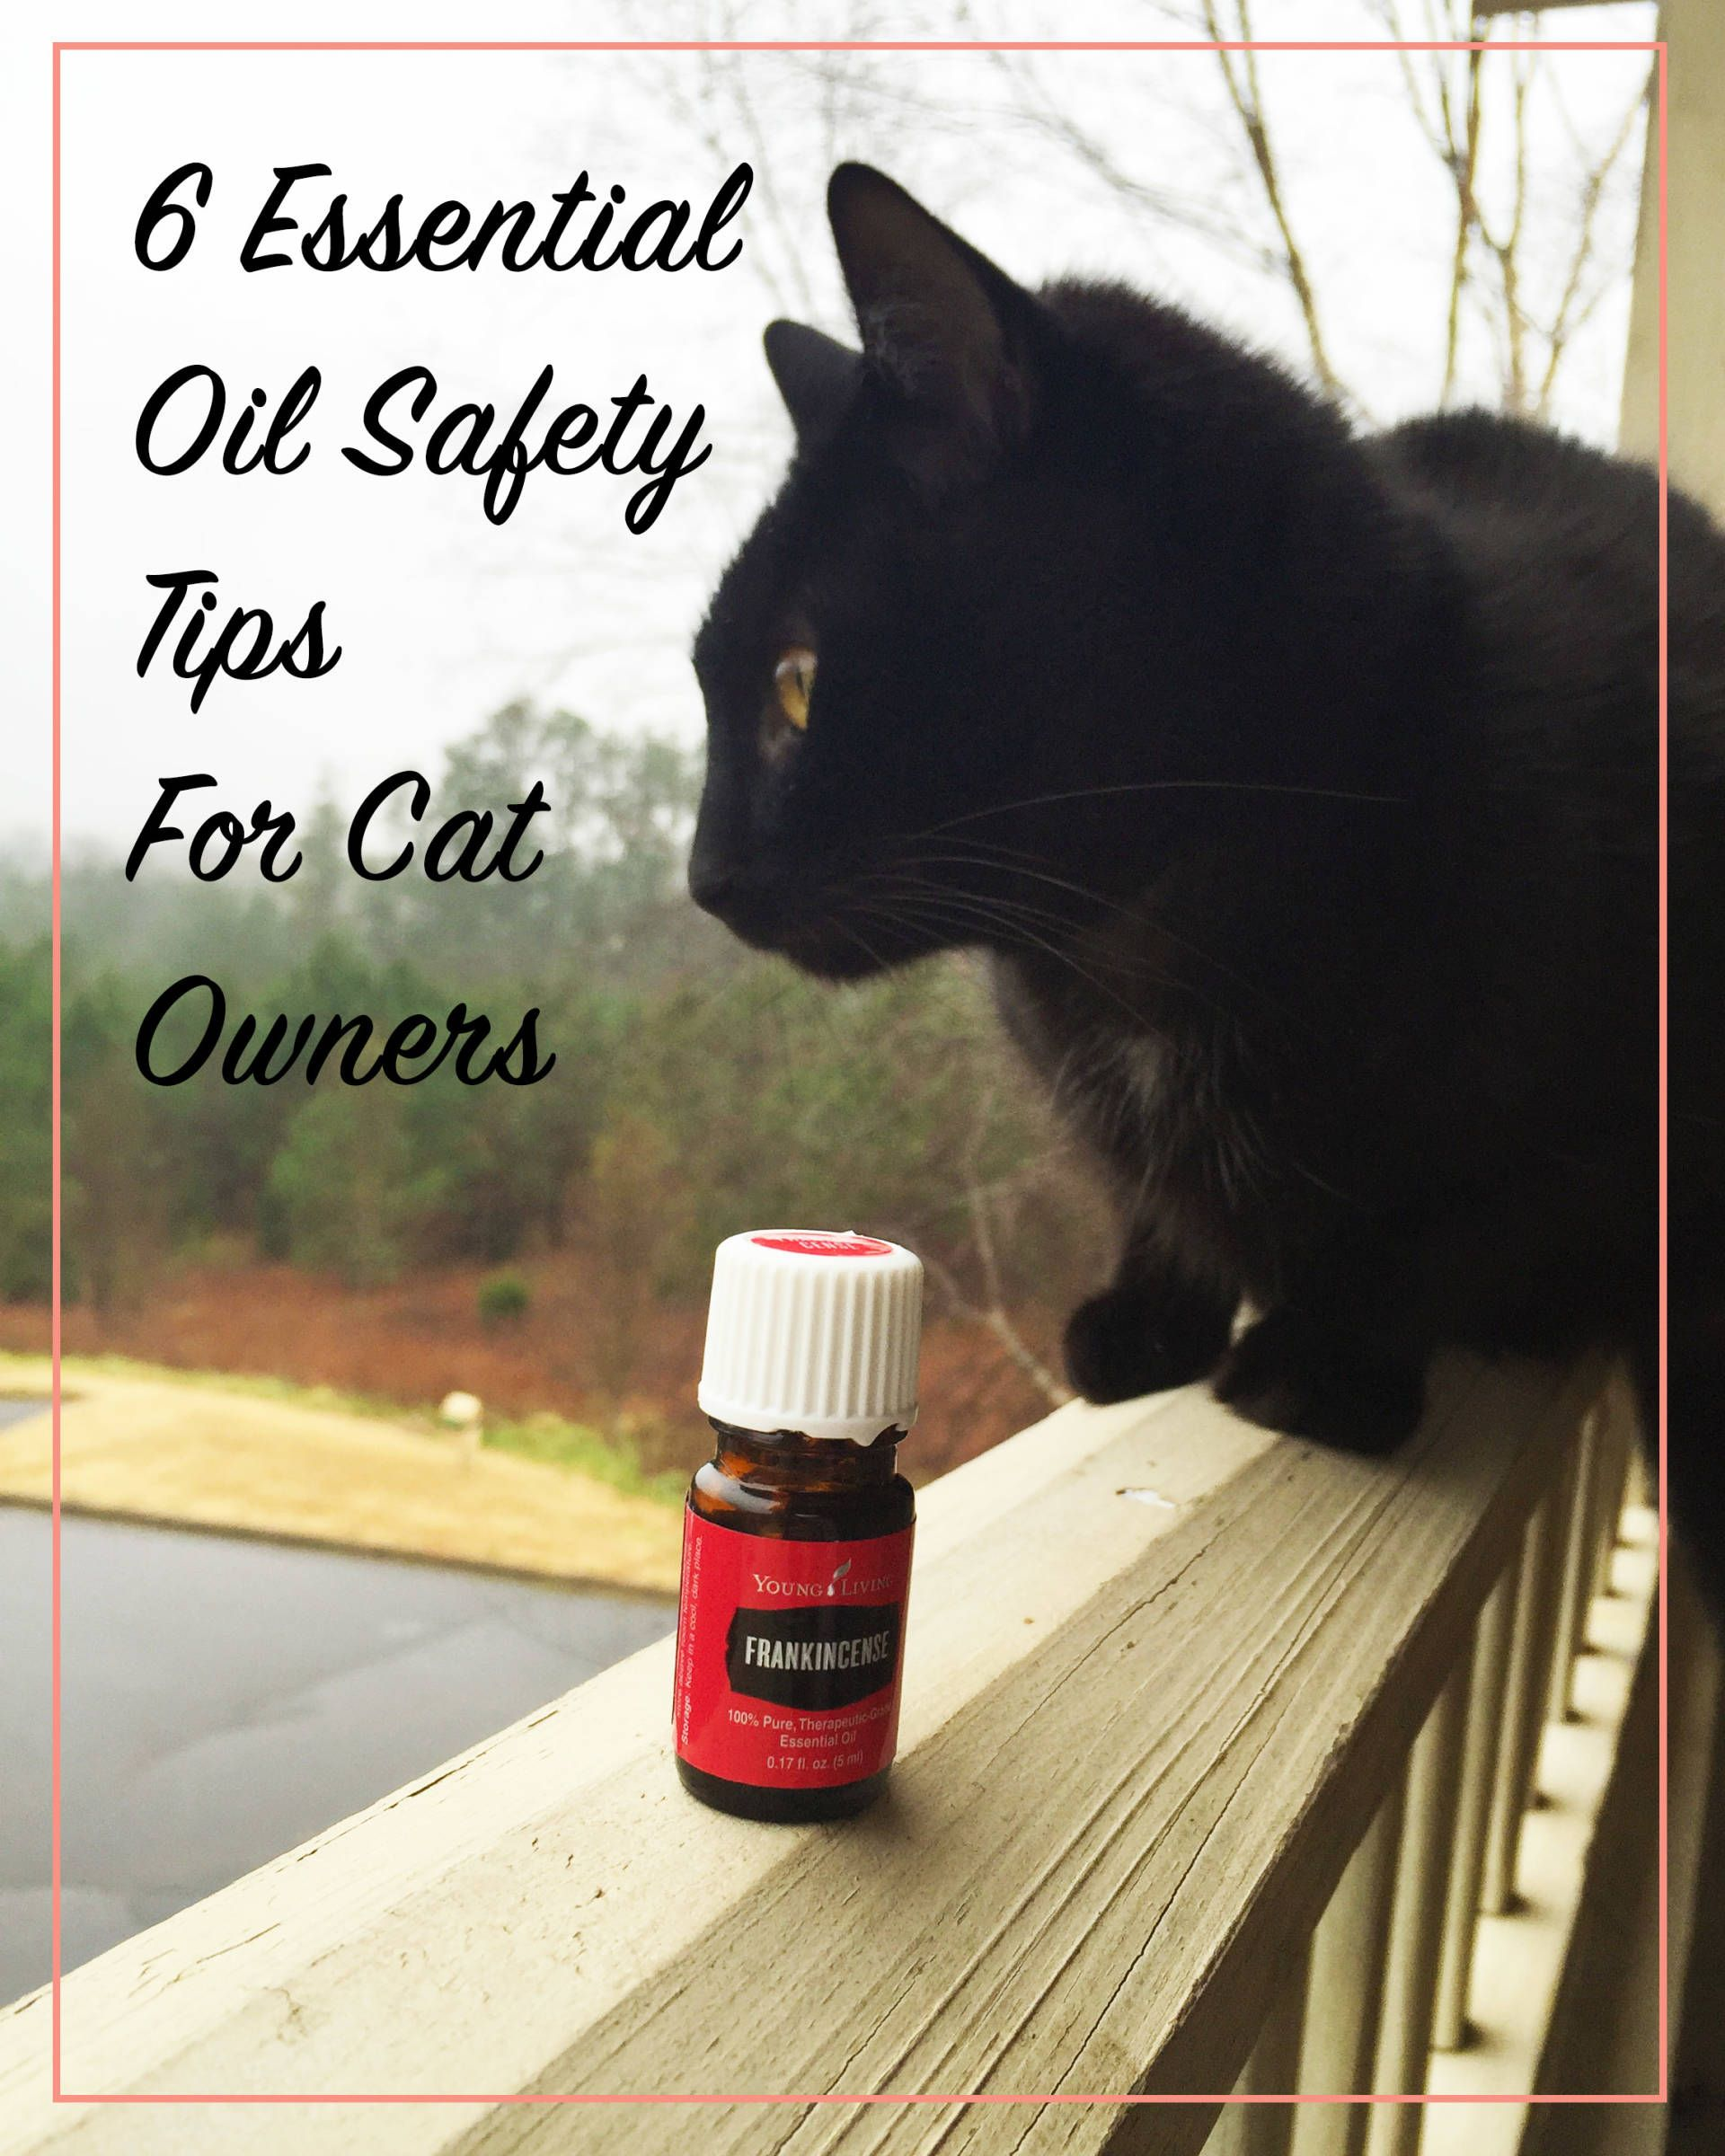 6 Essential Oil Safety Tips For Cat Owners